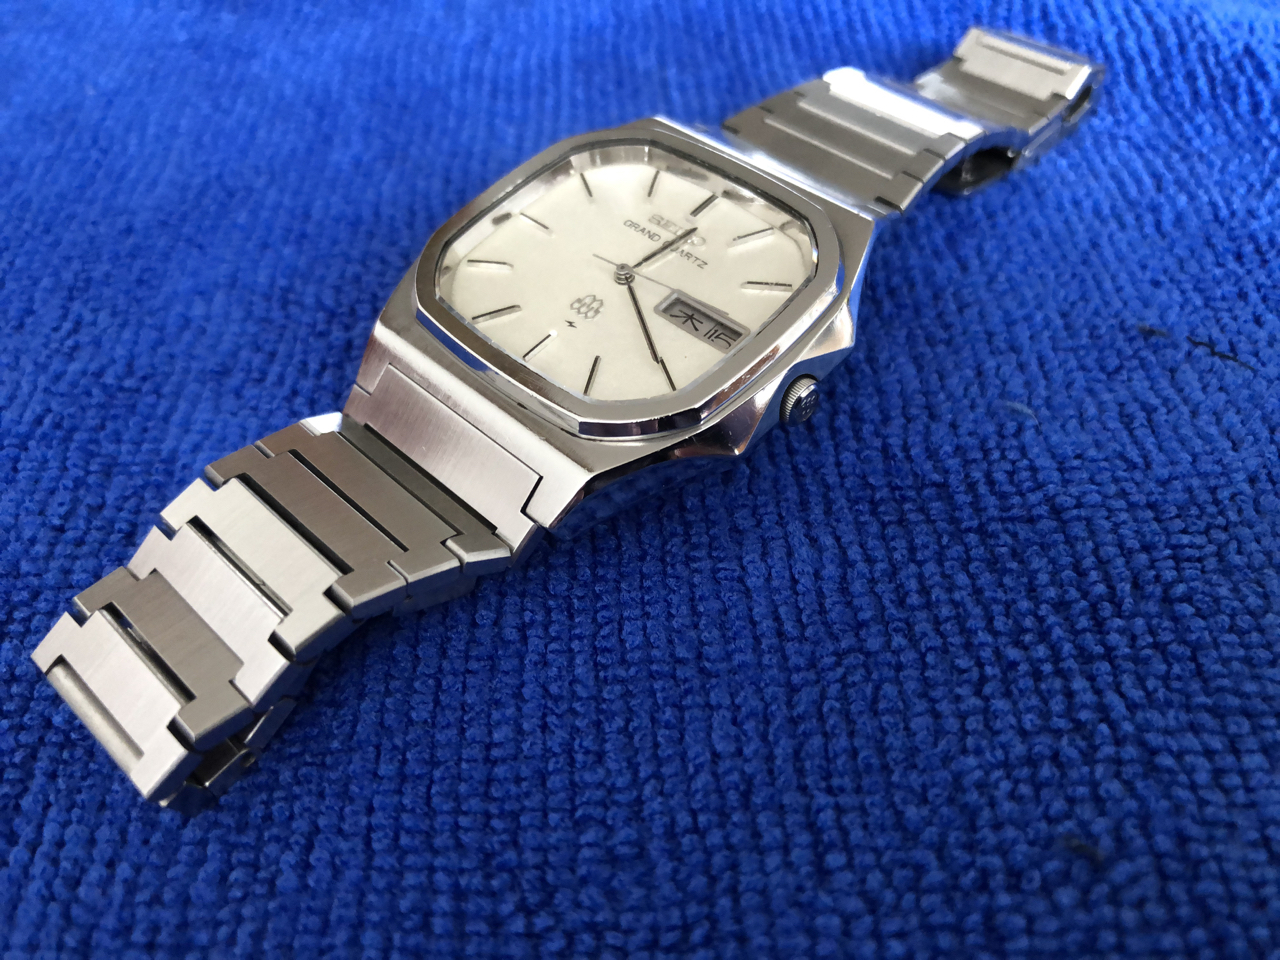 Seiko Grand Quartz 9256-5000 (sold)